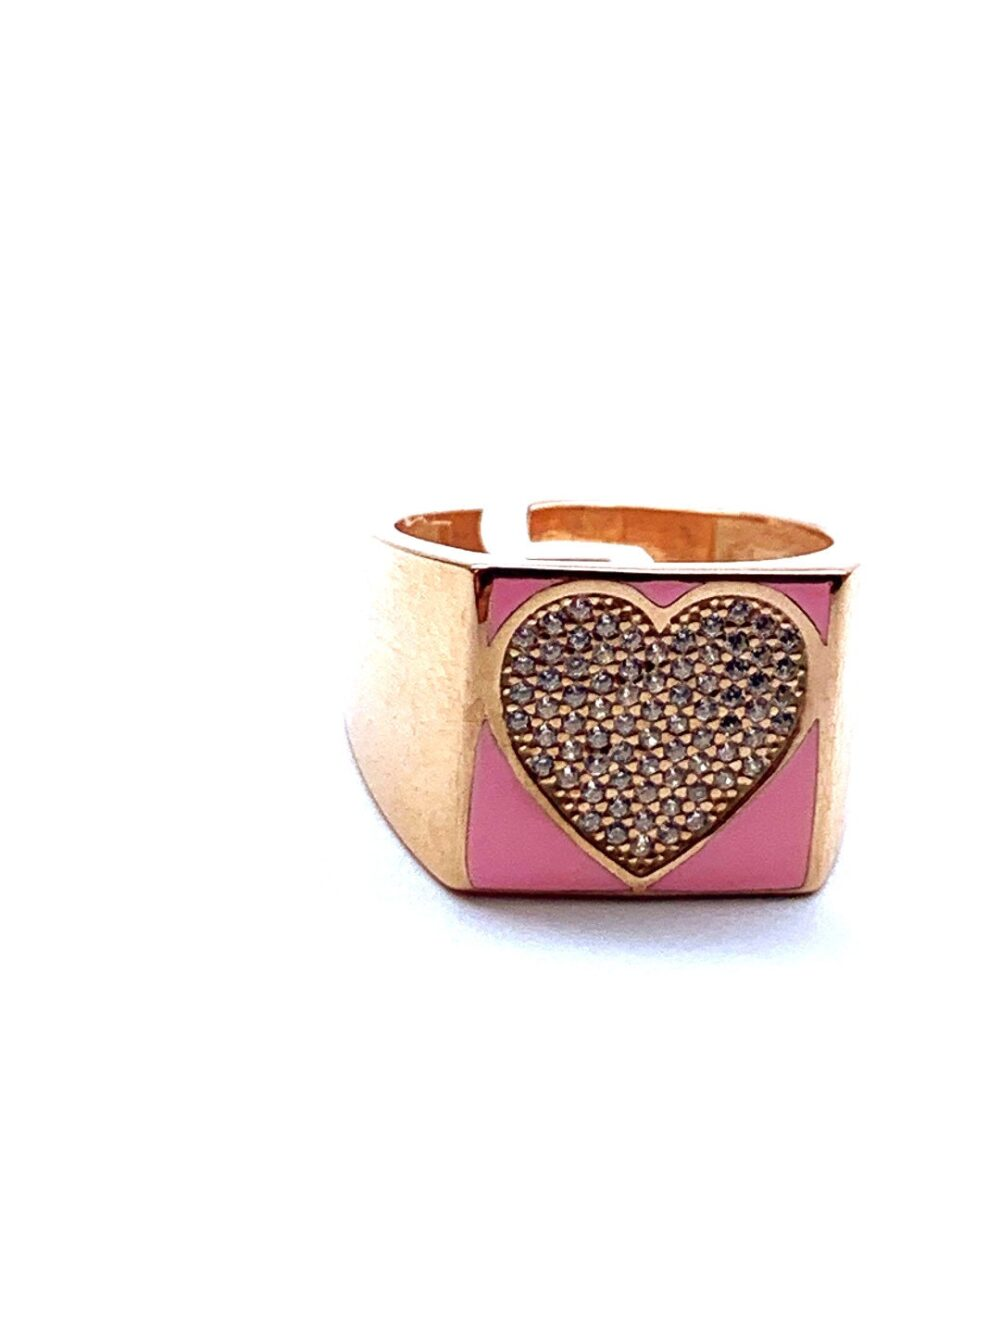 Pink Heart Ring, Enamel Jewelry, Colorful Cz 925 Sterling Silver, Rose Gold Vermeil, Gift For Her, Adjustable